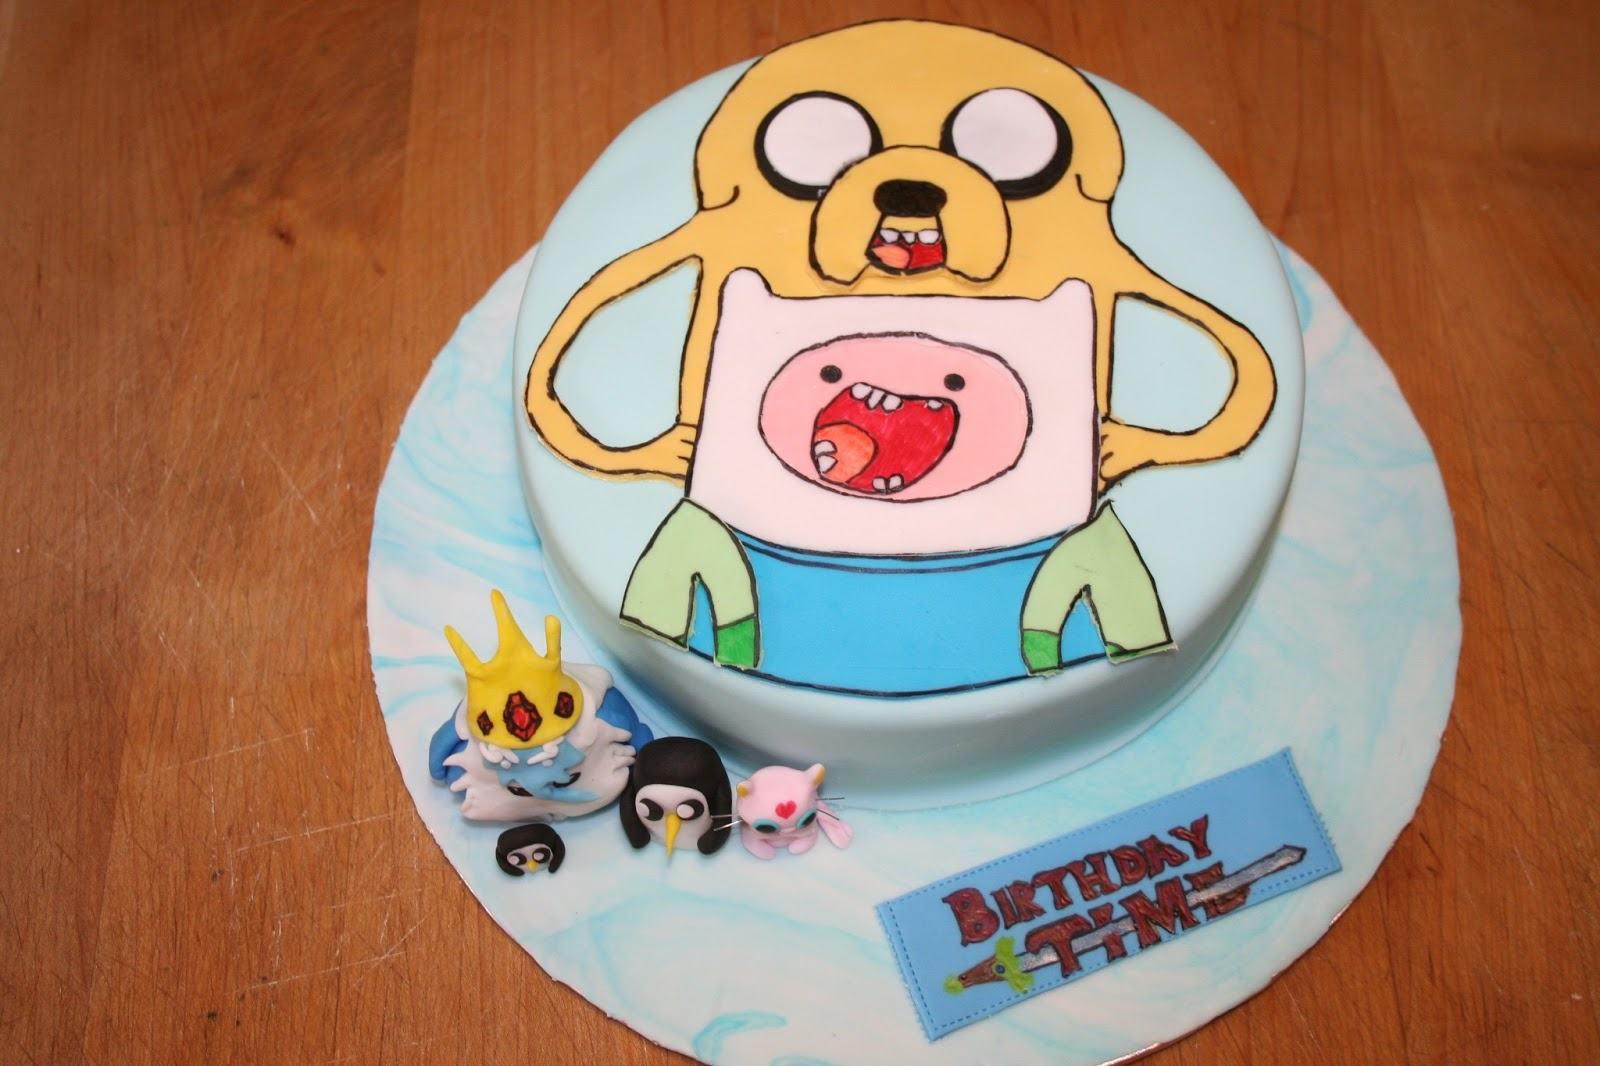 Birthday Time with Finn and Jake!  Carpe Cakem! (Seize the Cake!)